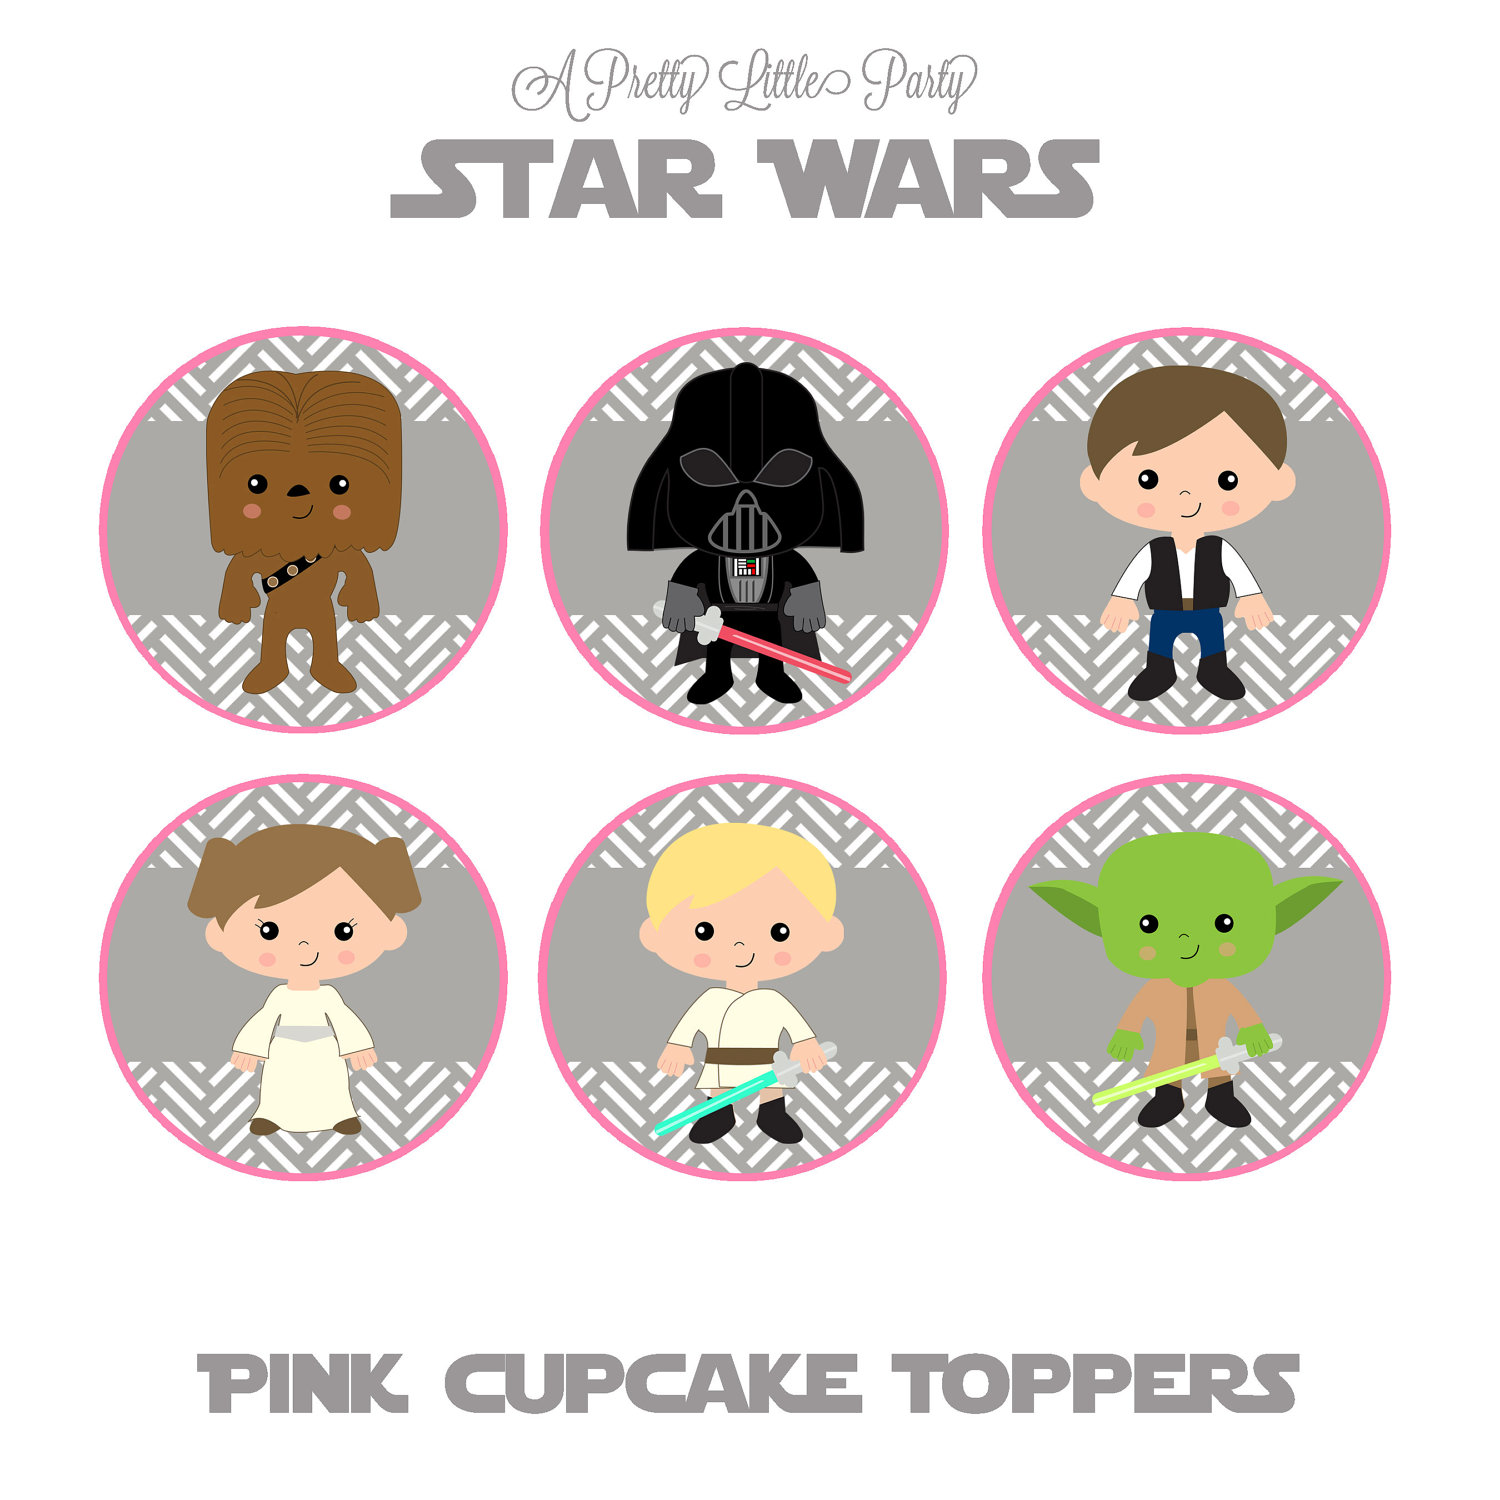 Star Wars clipart baby shower Item? Like this Character for